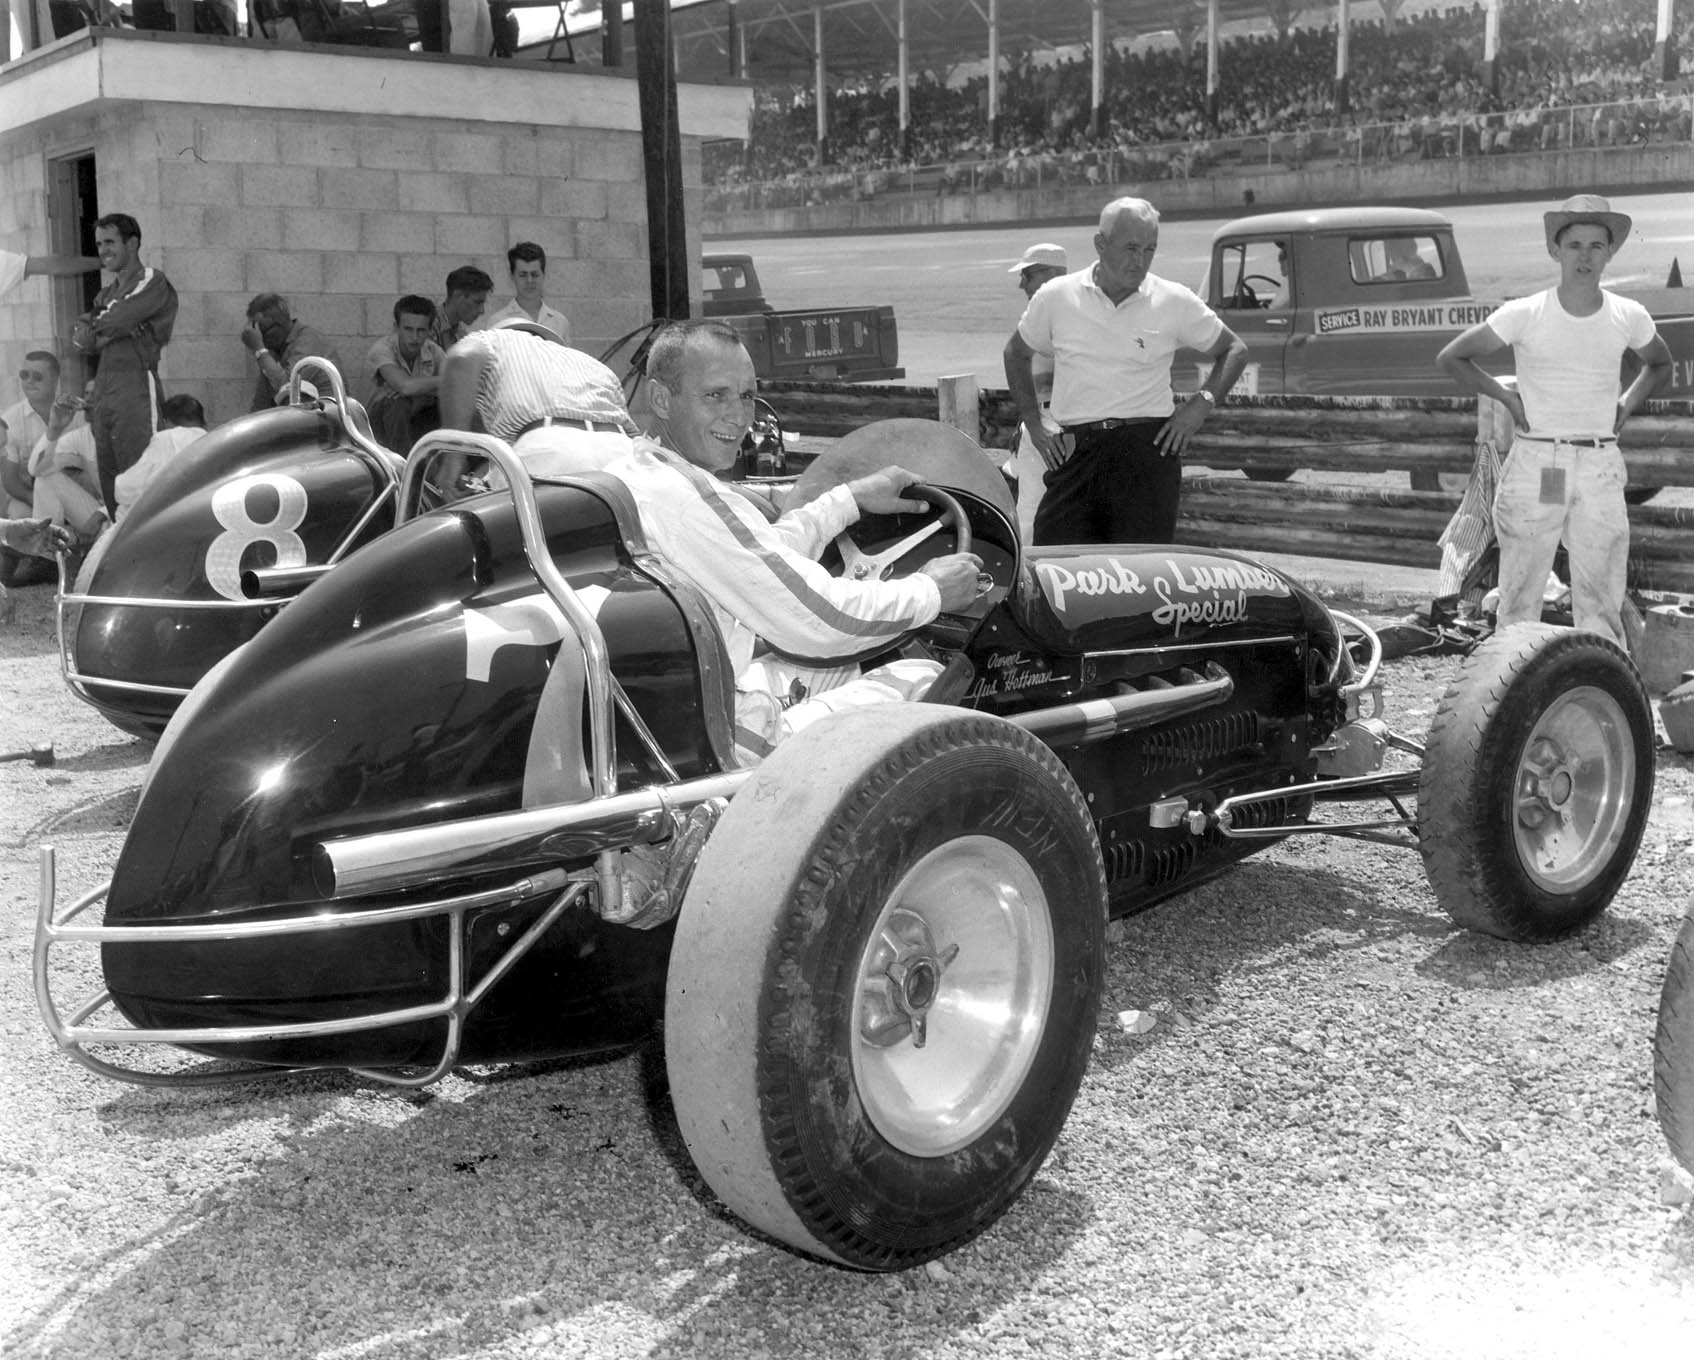 Back in the early days, Gus fielded this black Number 7 sprint car. It's shown here at the Dayton Speedway.